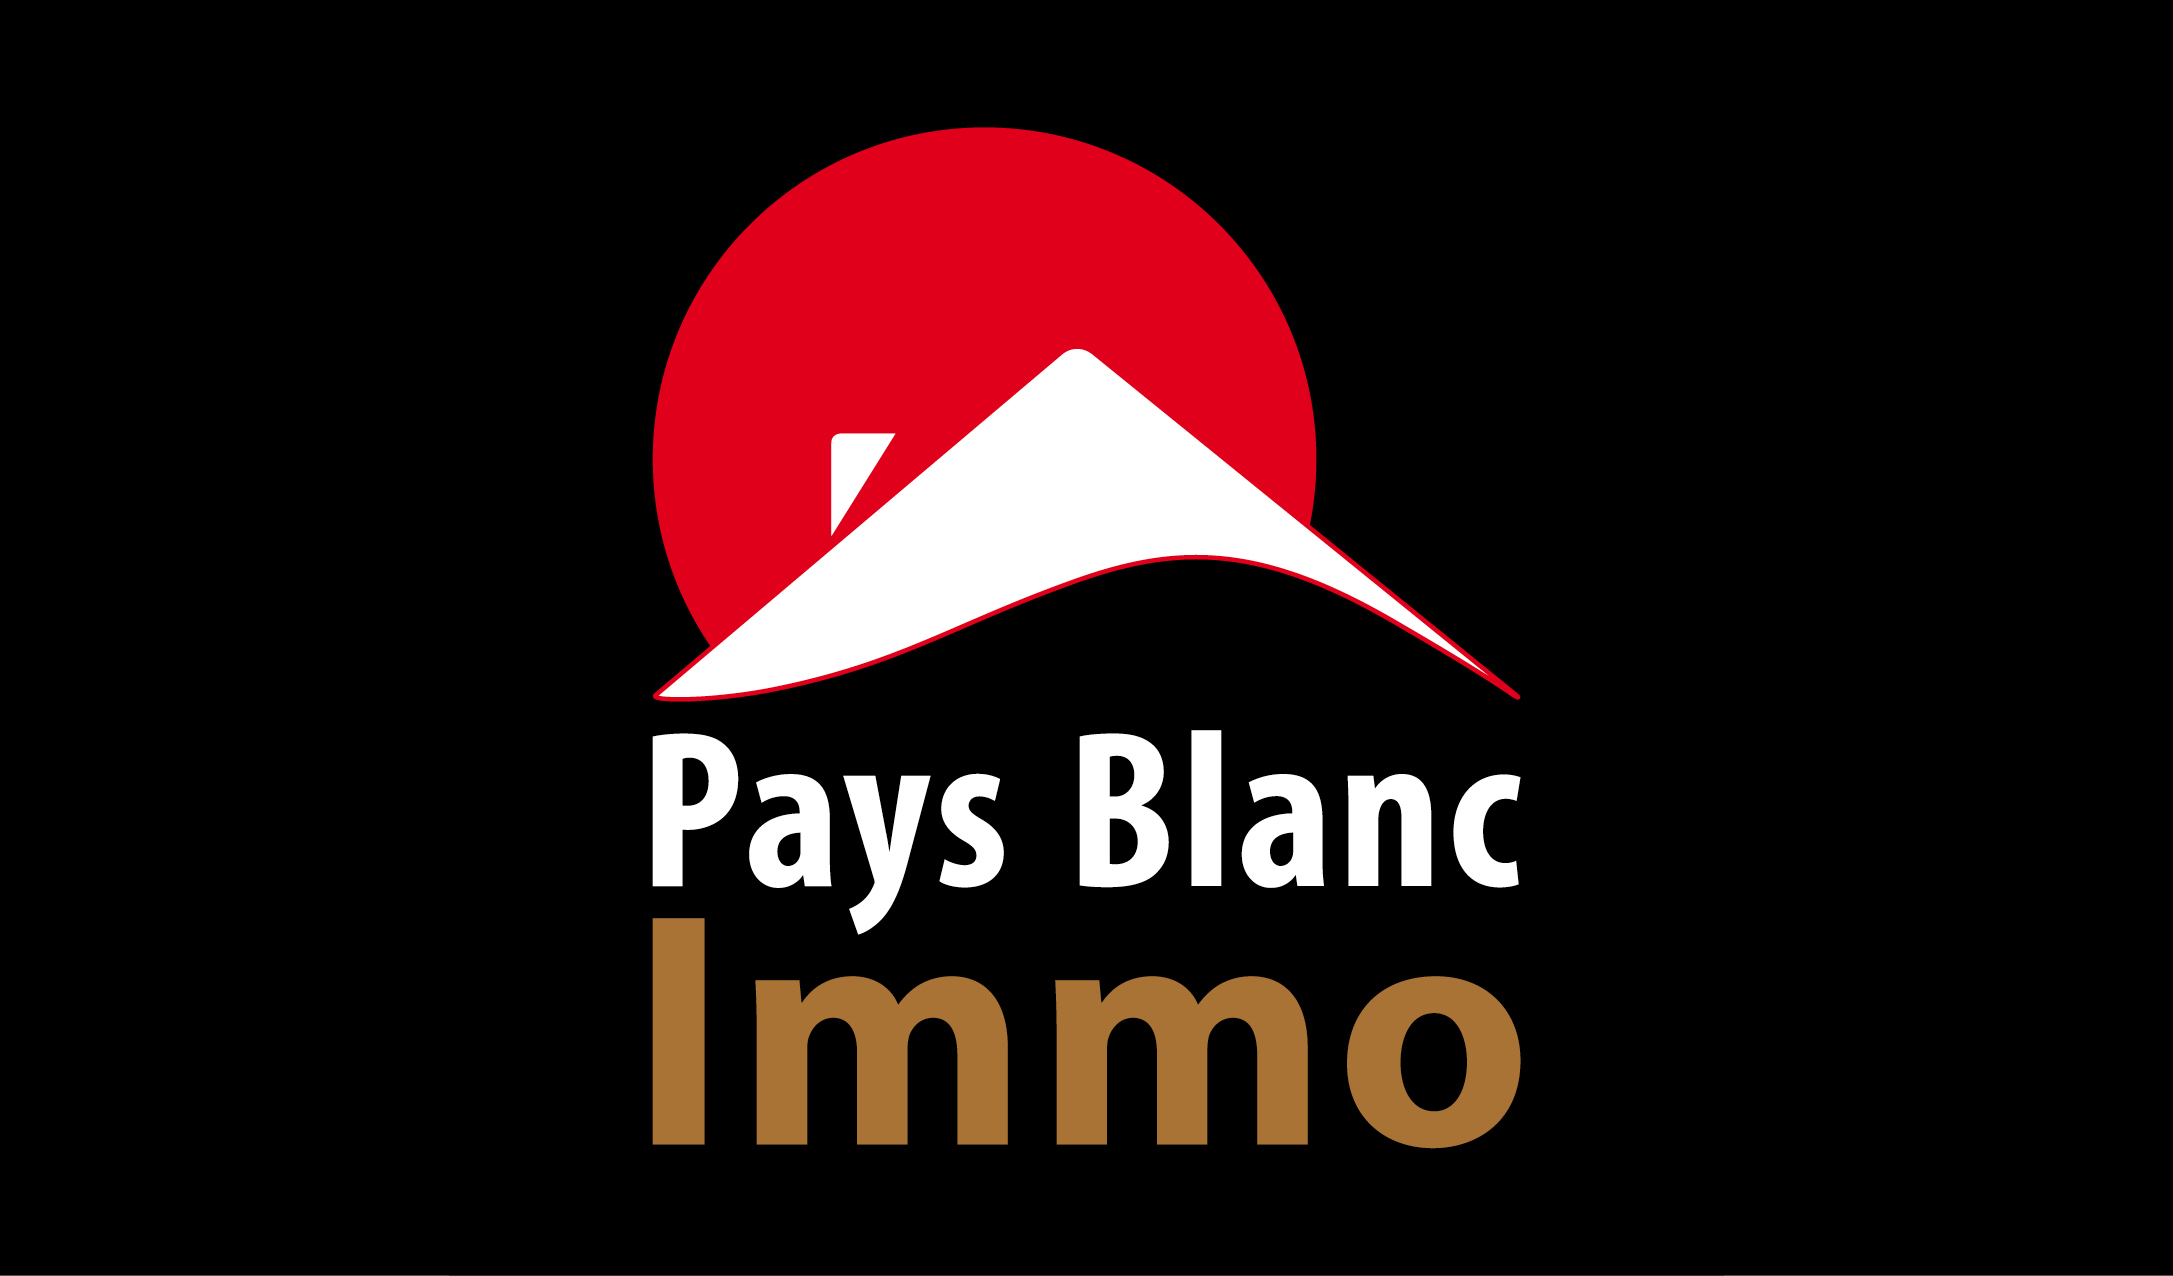 Pays Blanc Immo